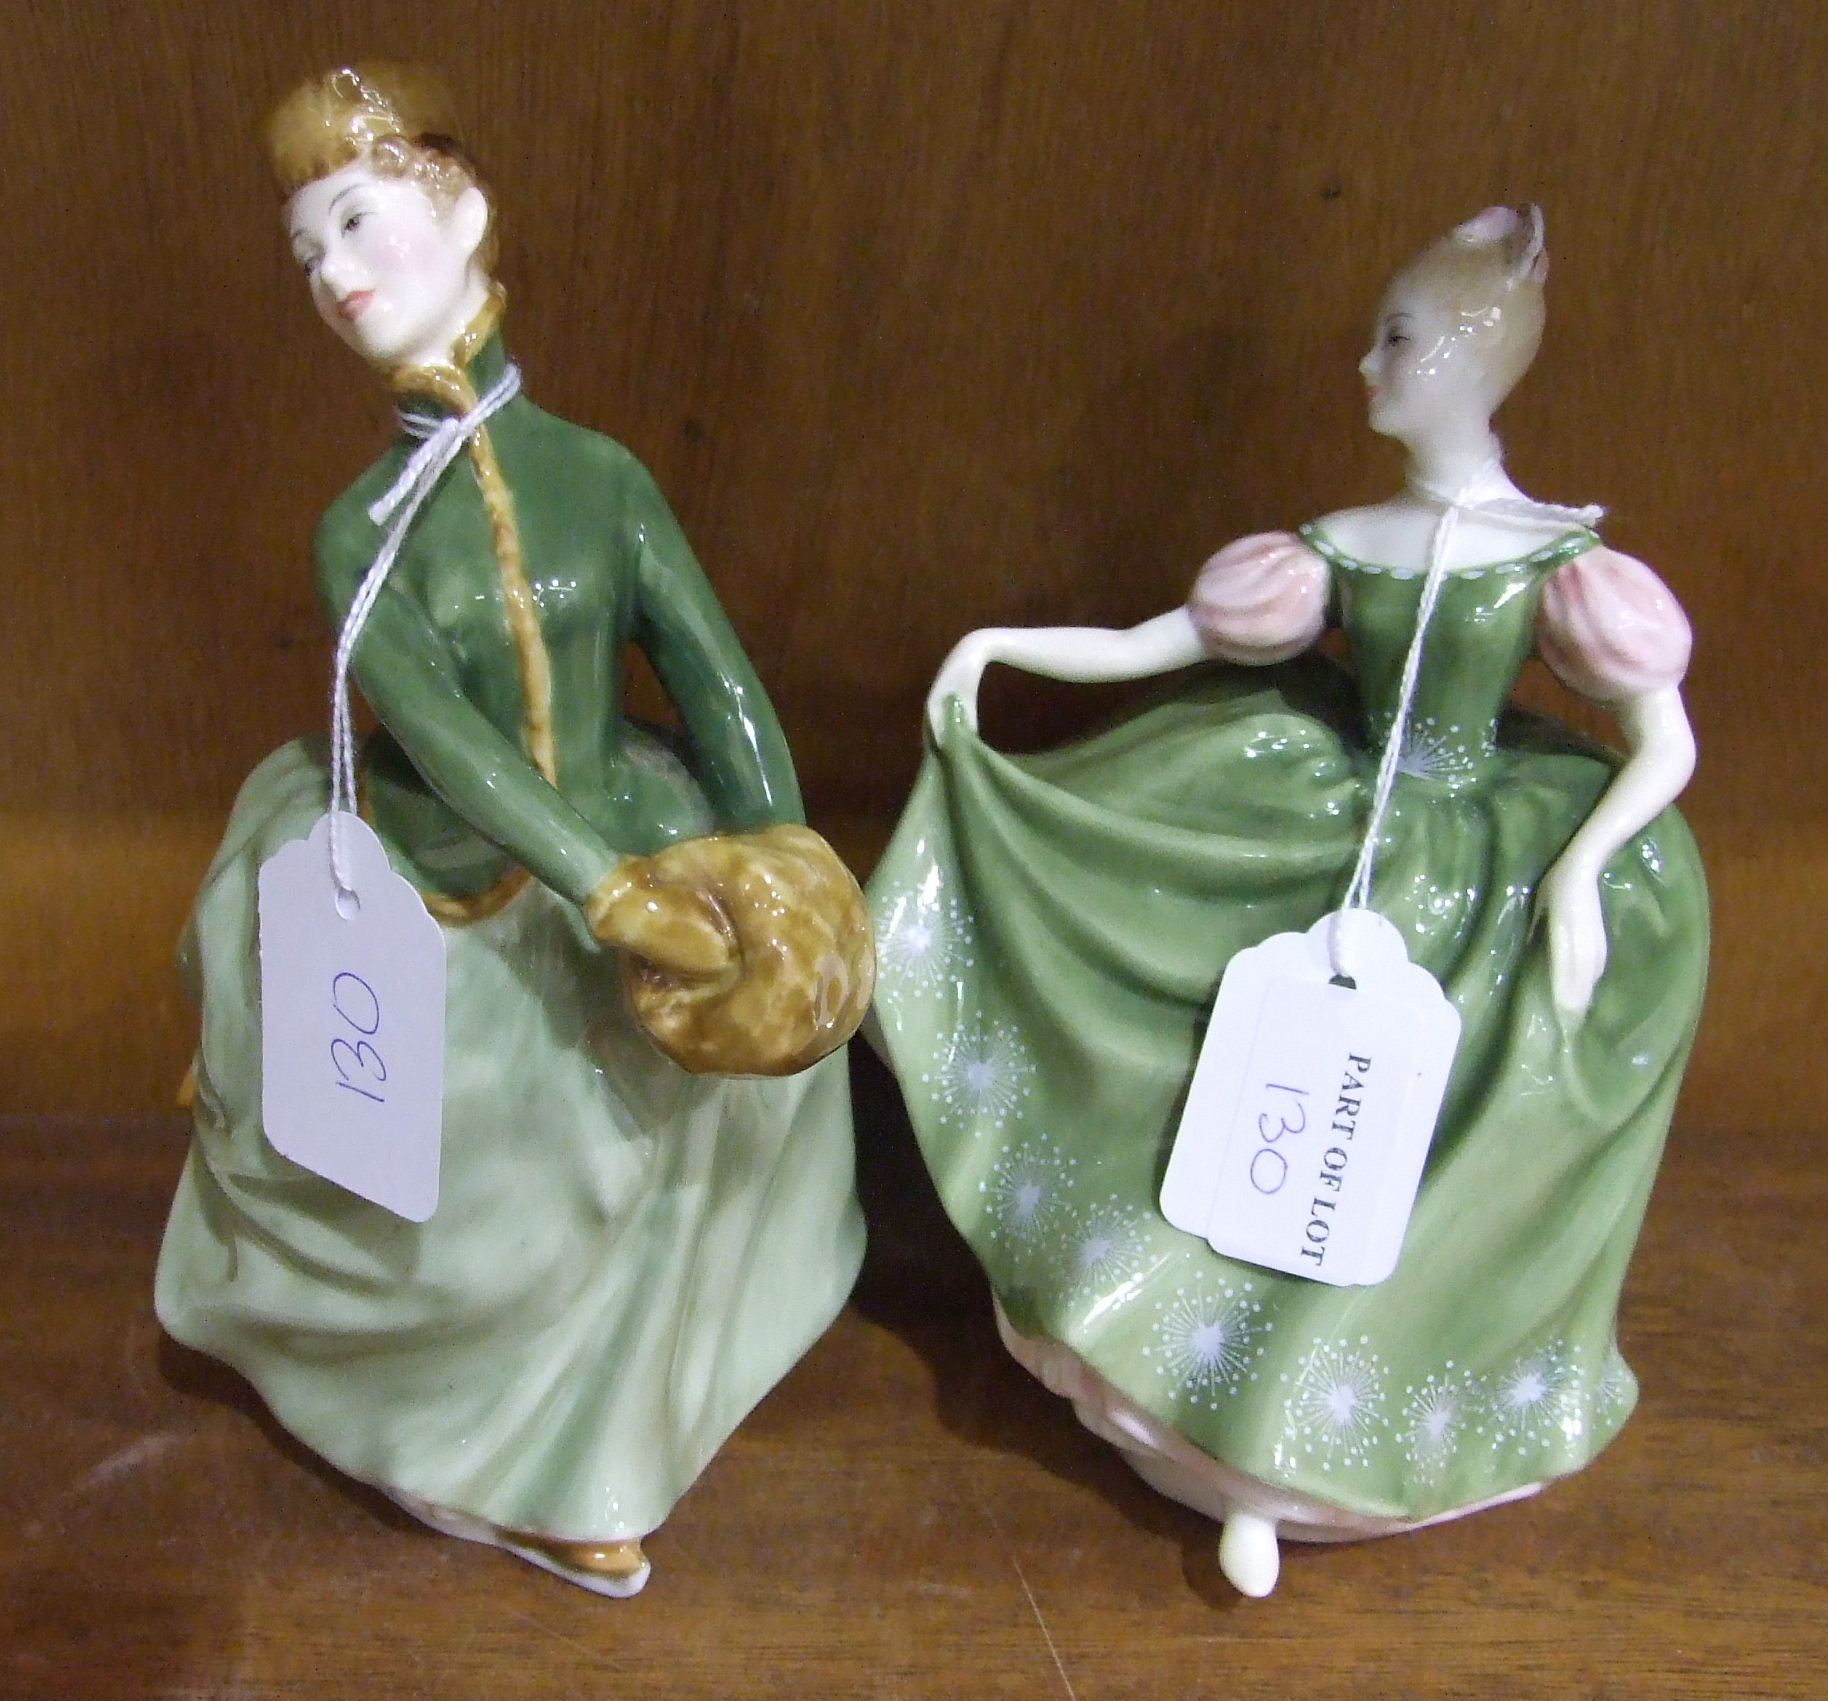 Lot 130 - Two Royal Doulton figurines, 'Michele' HN2234, 'Grace' HN2318, two Royal Doulton 'Bunnykins'